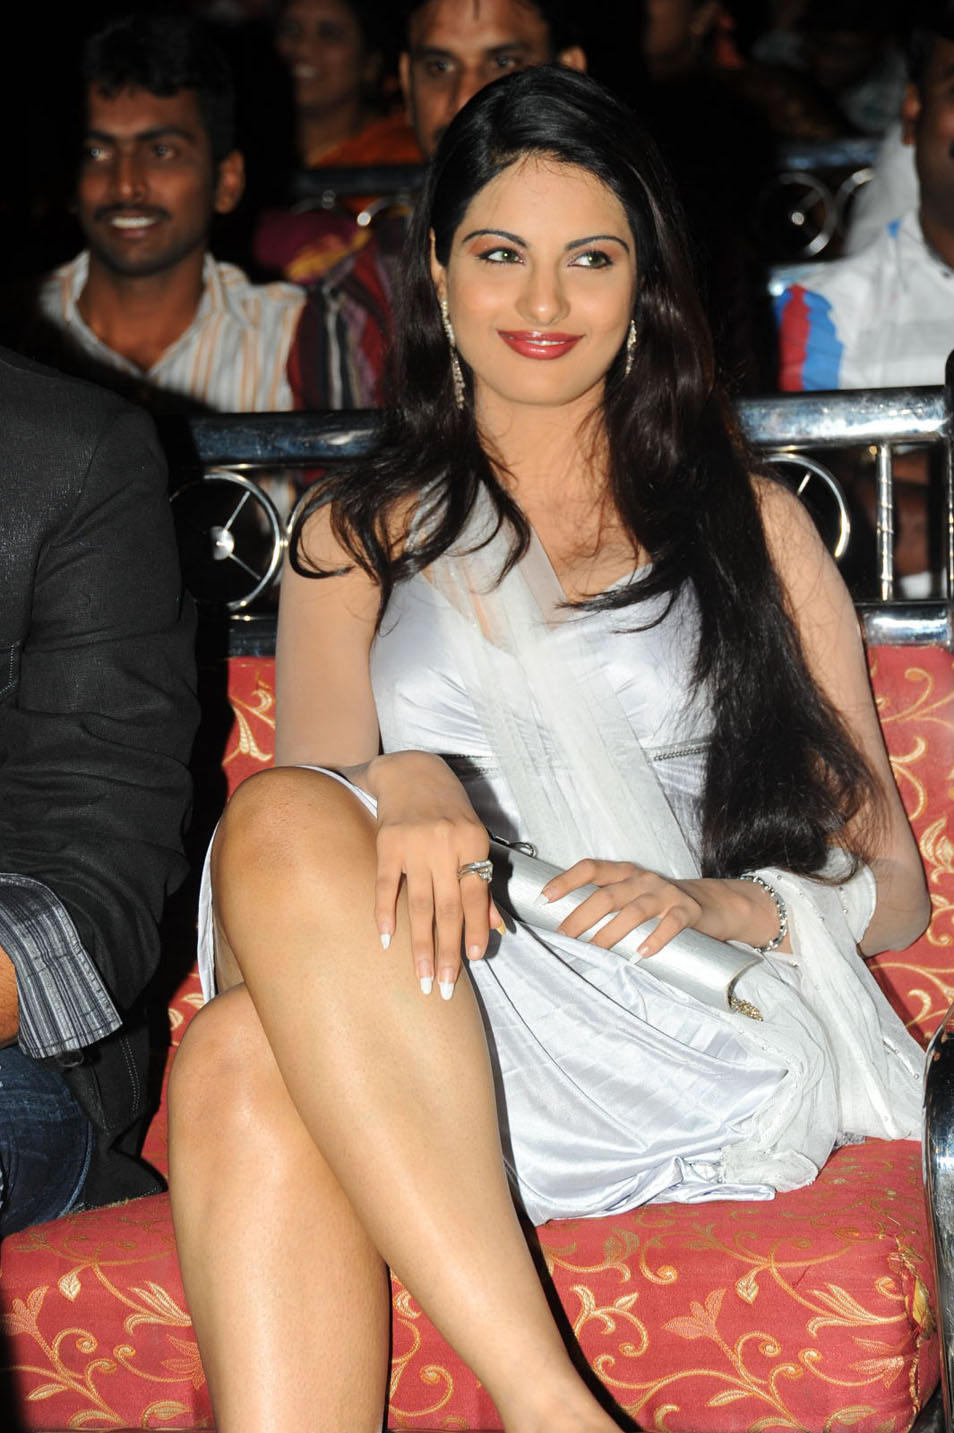 Beautiful, South Indian Actress, Jinal Pandya, South Indian Masala, Celebs, Indian Celebs, Sexy Legs, Hot, Jinal Pandya Showing her Sexy Legs